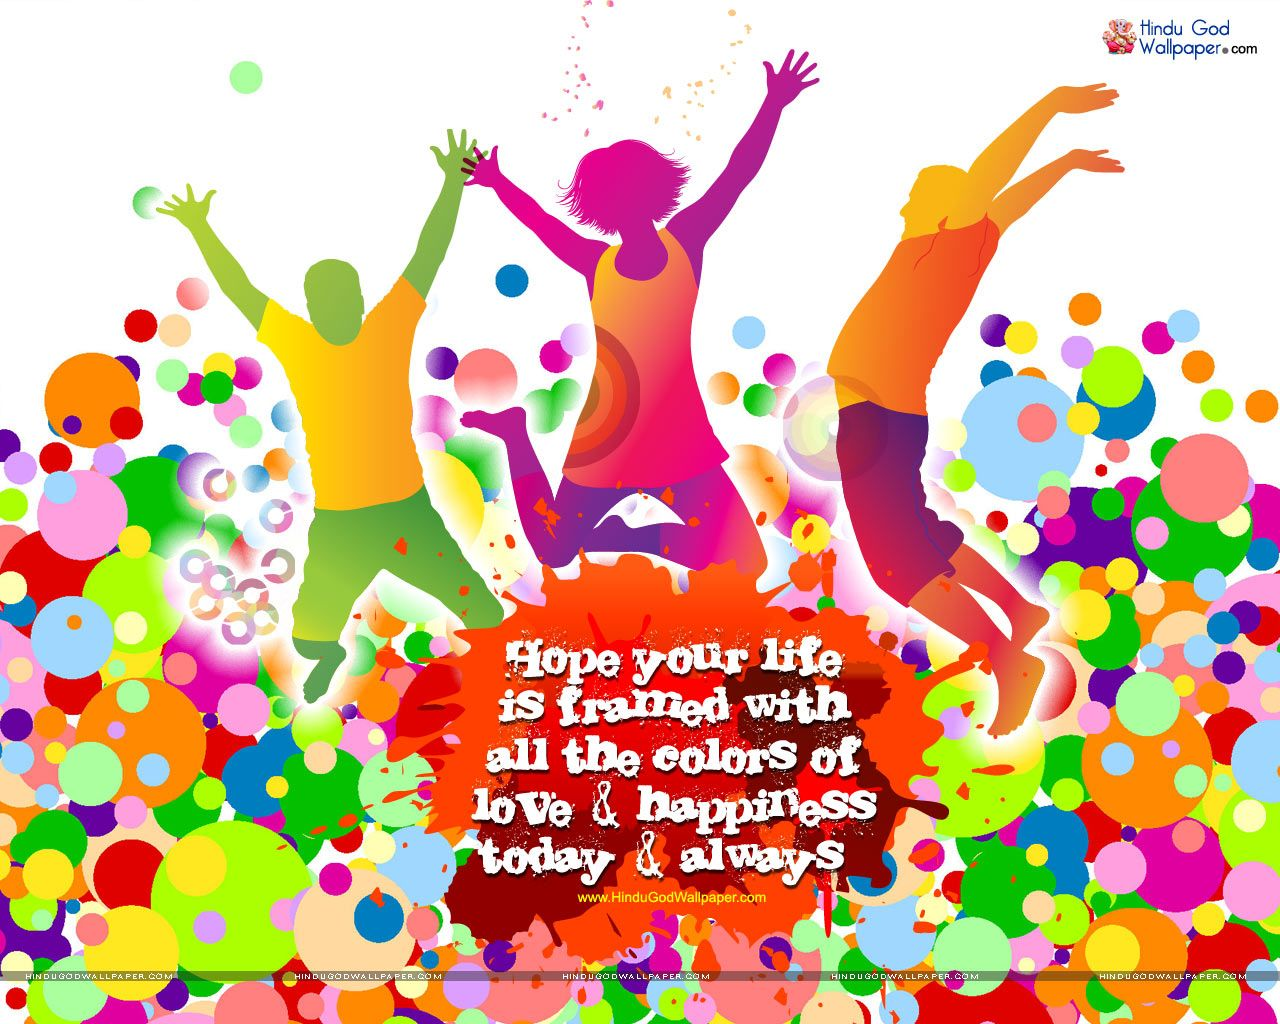 wwwholiwallpapercom Happy Holi Wallpapers Download Holi 1280x1024